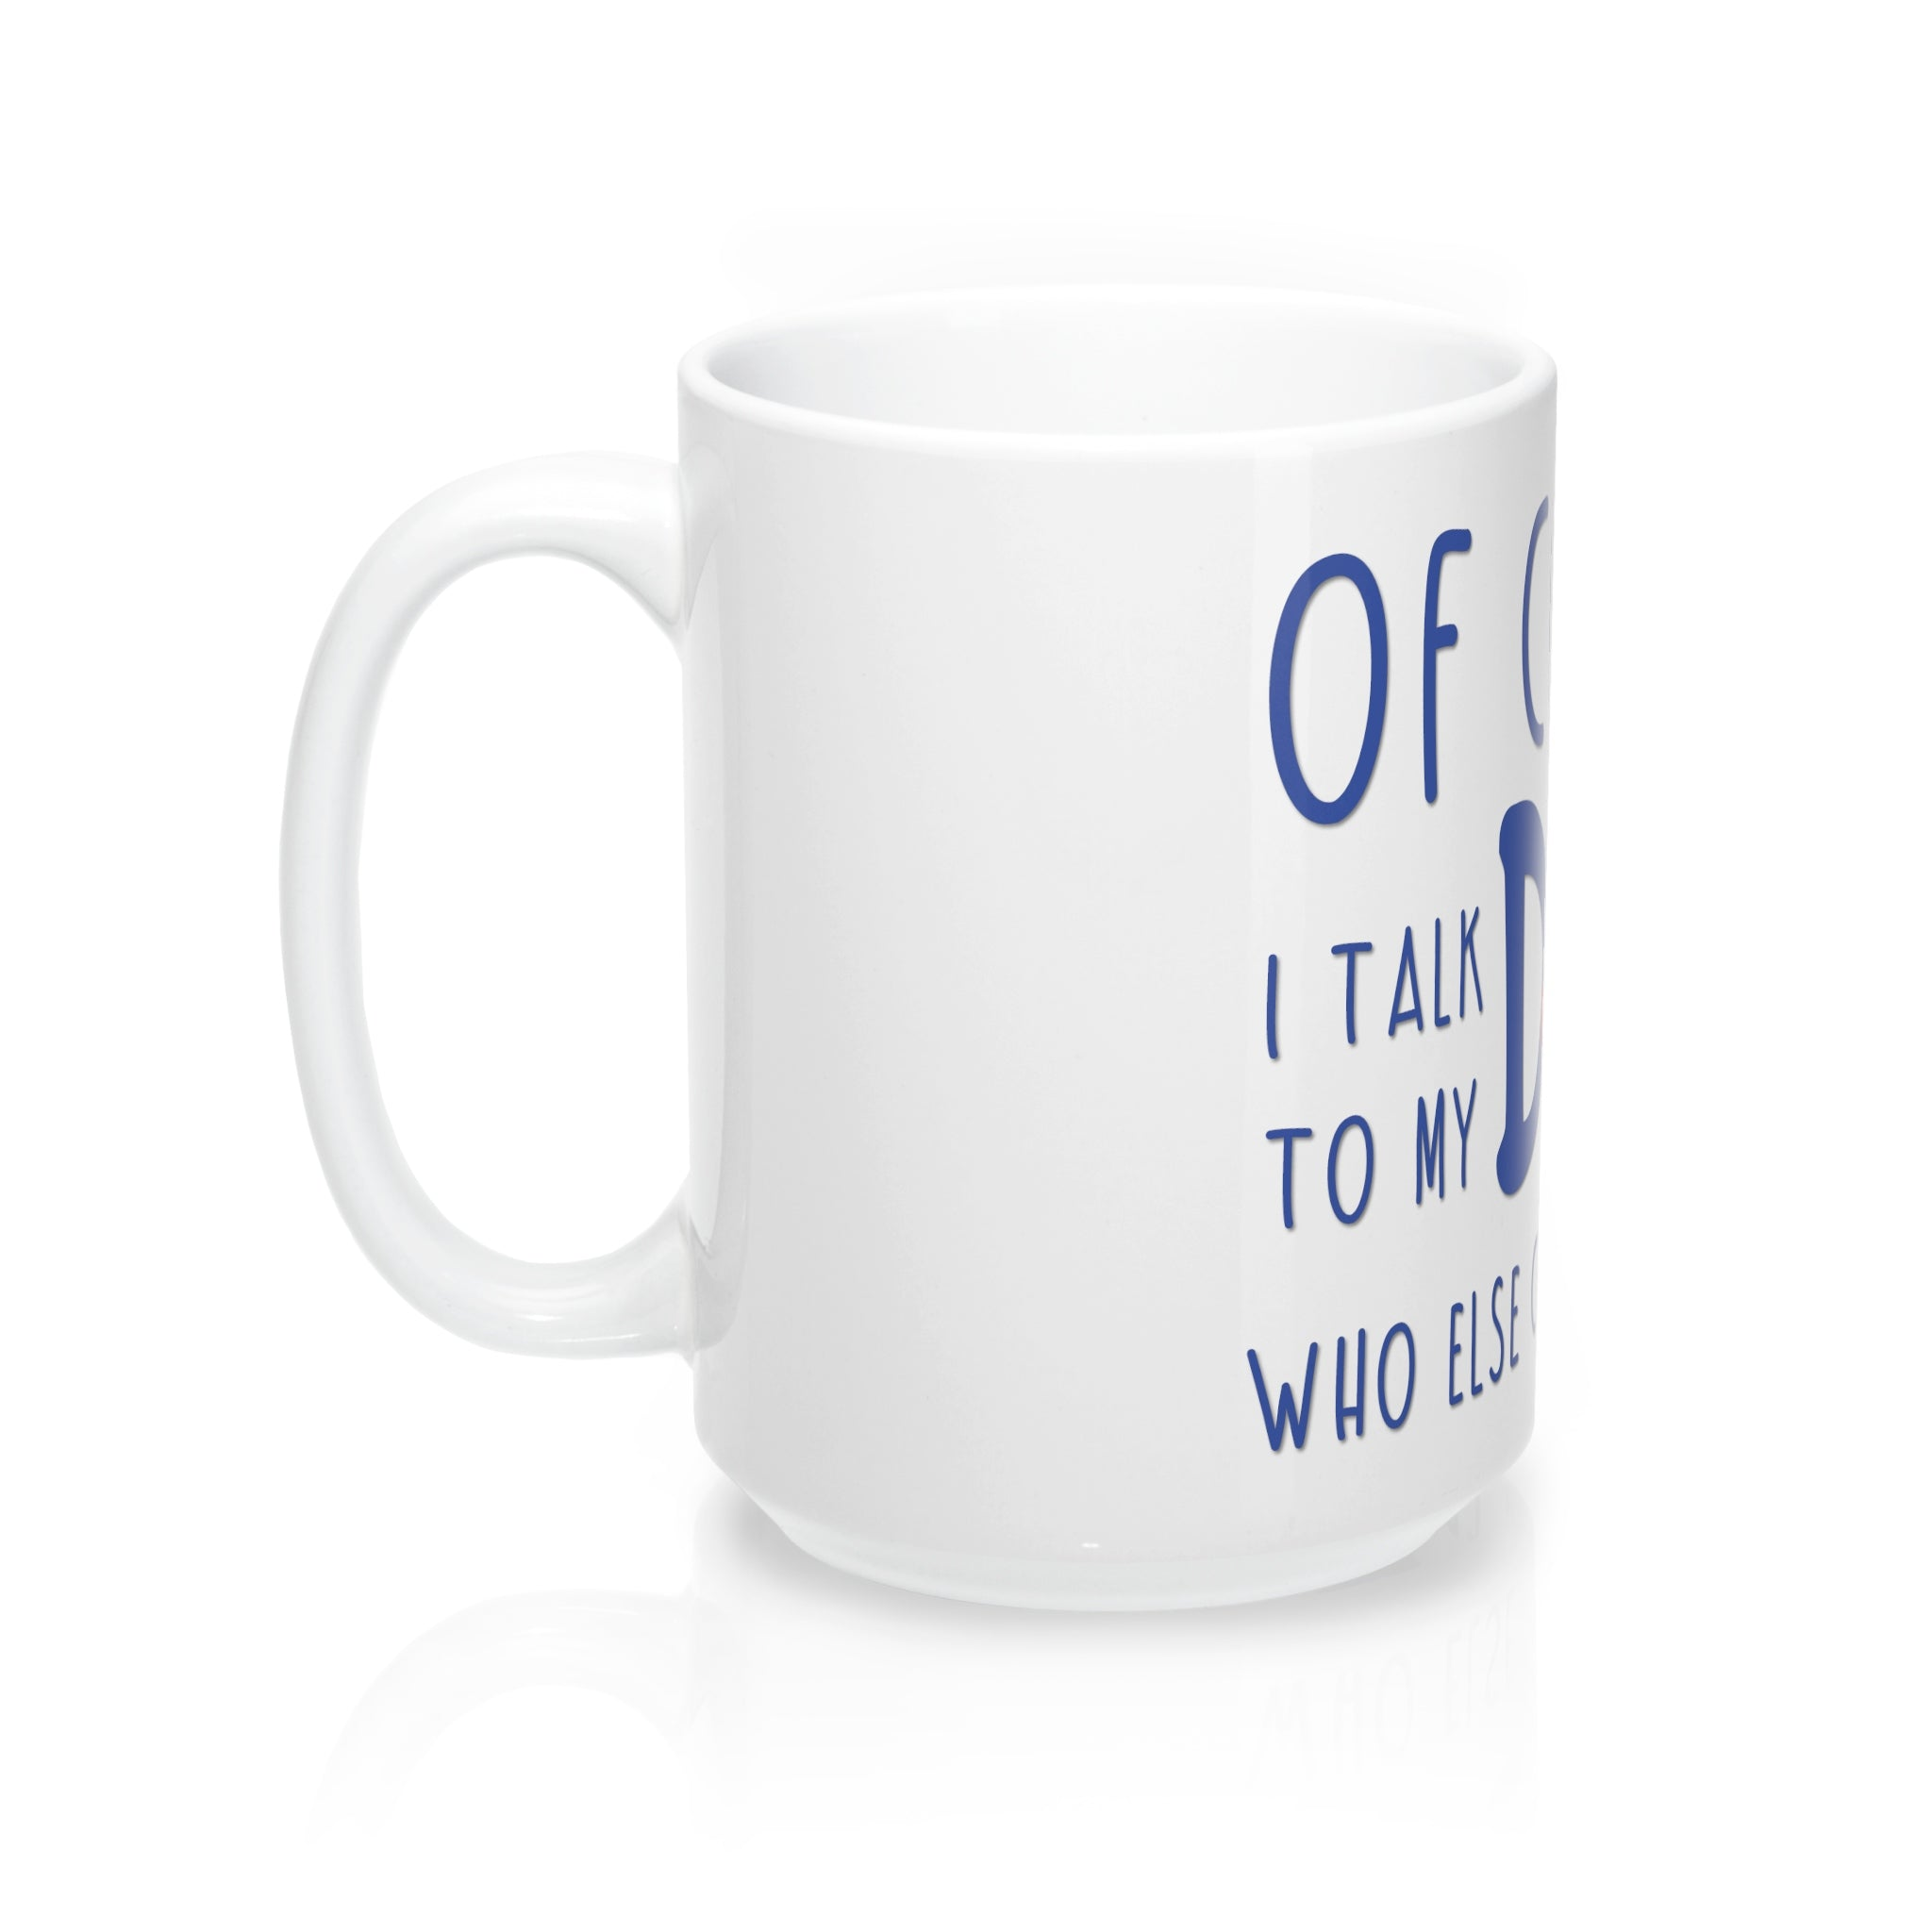 Of course I talk to my dog who else can I trust Mug